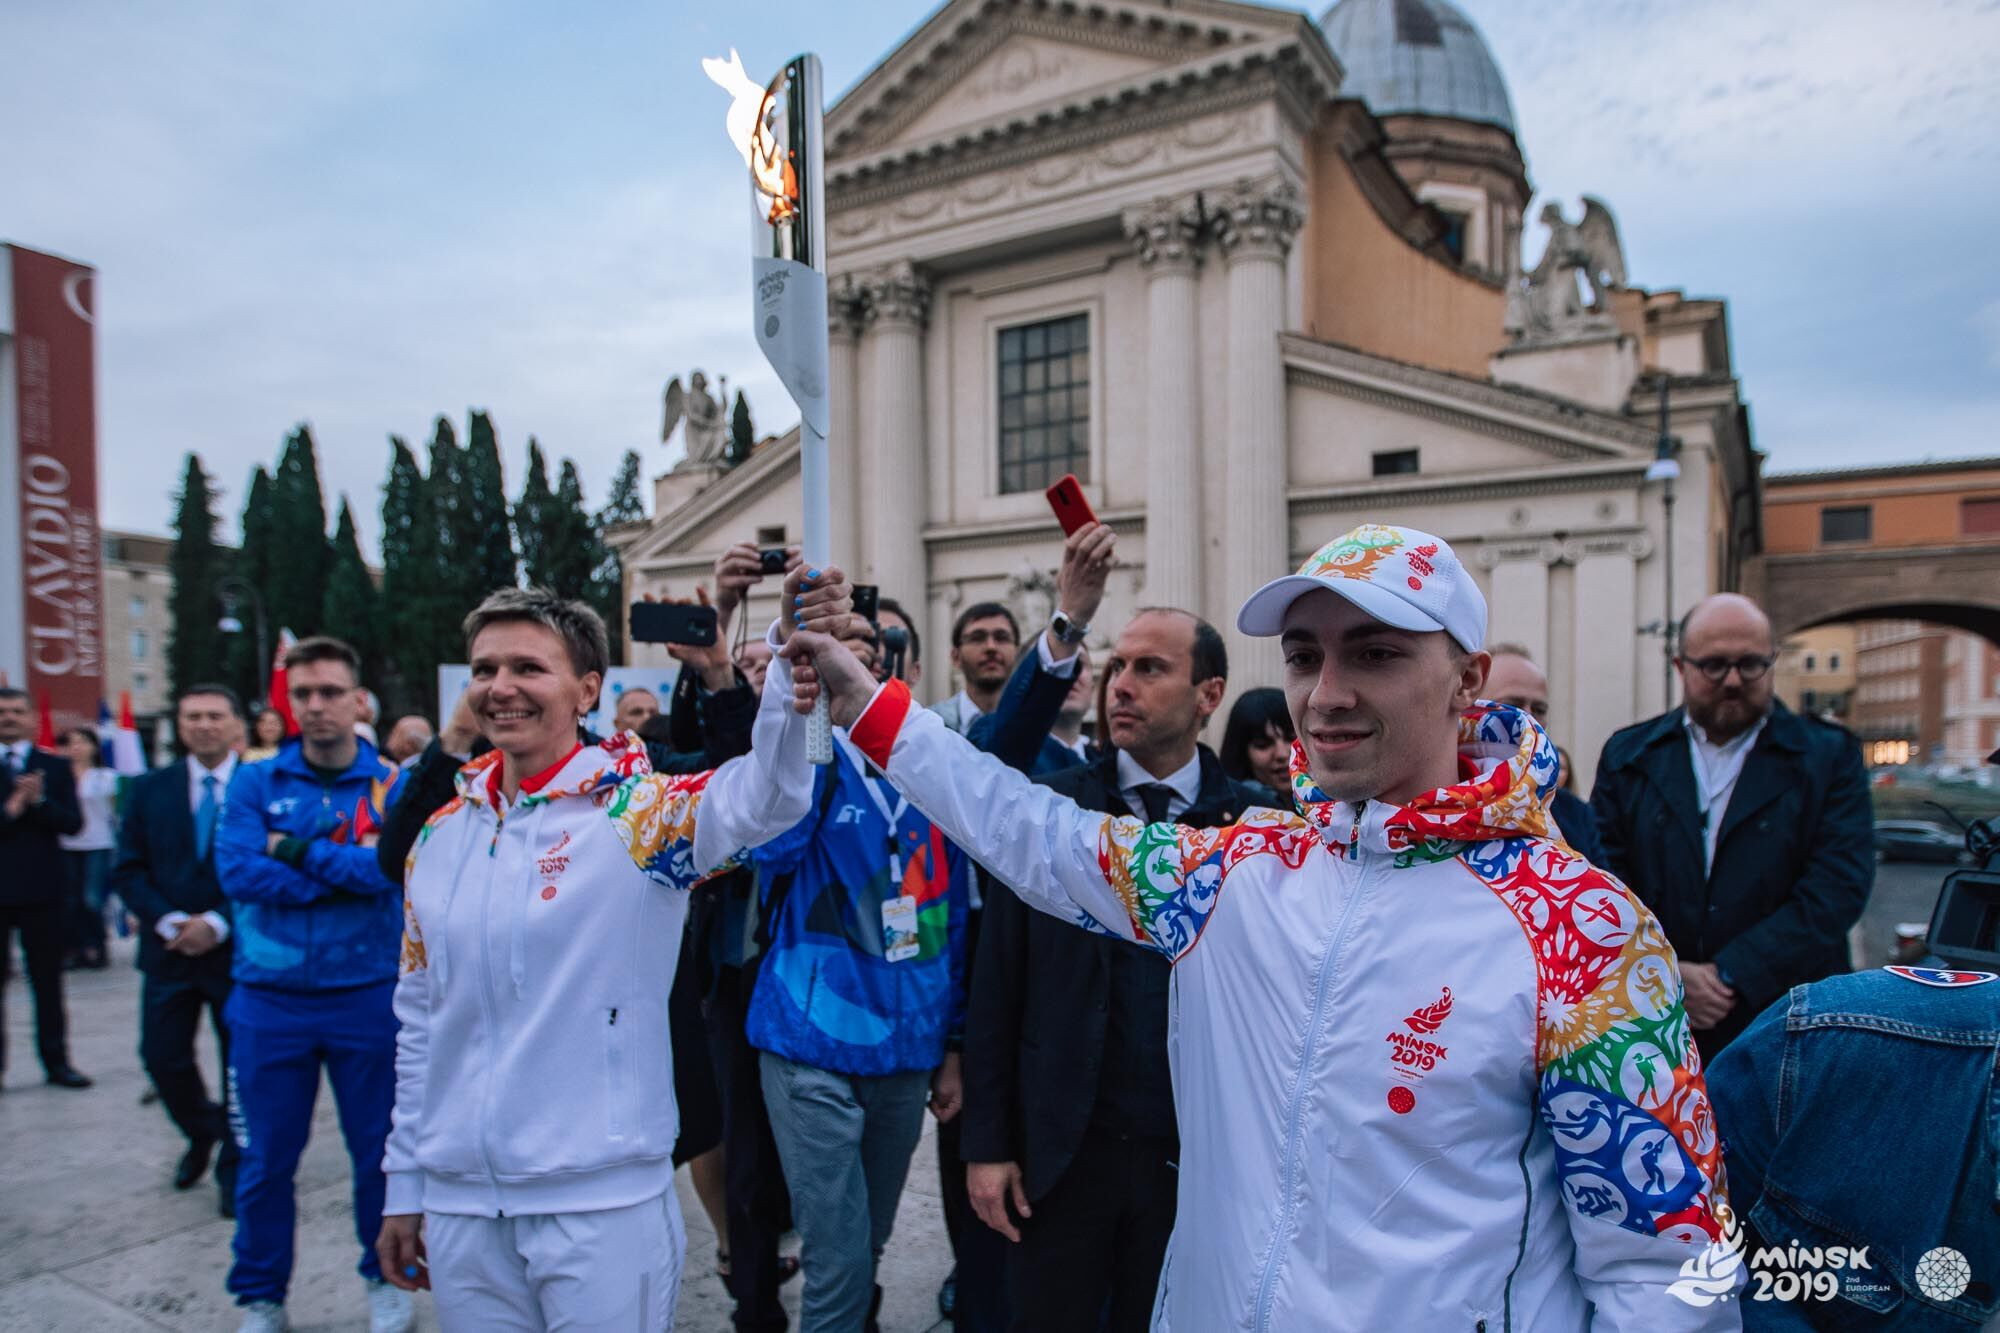 Yulia Nesterenko and Uladzislau Hancharou play their part in promoting Minsk 2019 ©Minsk 2019